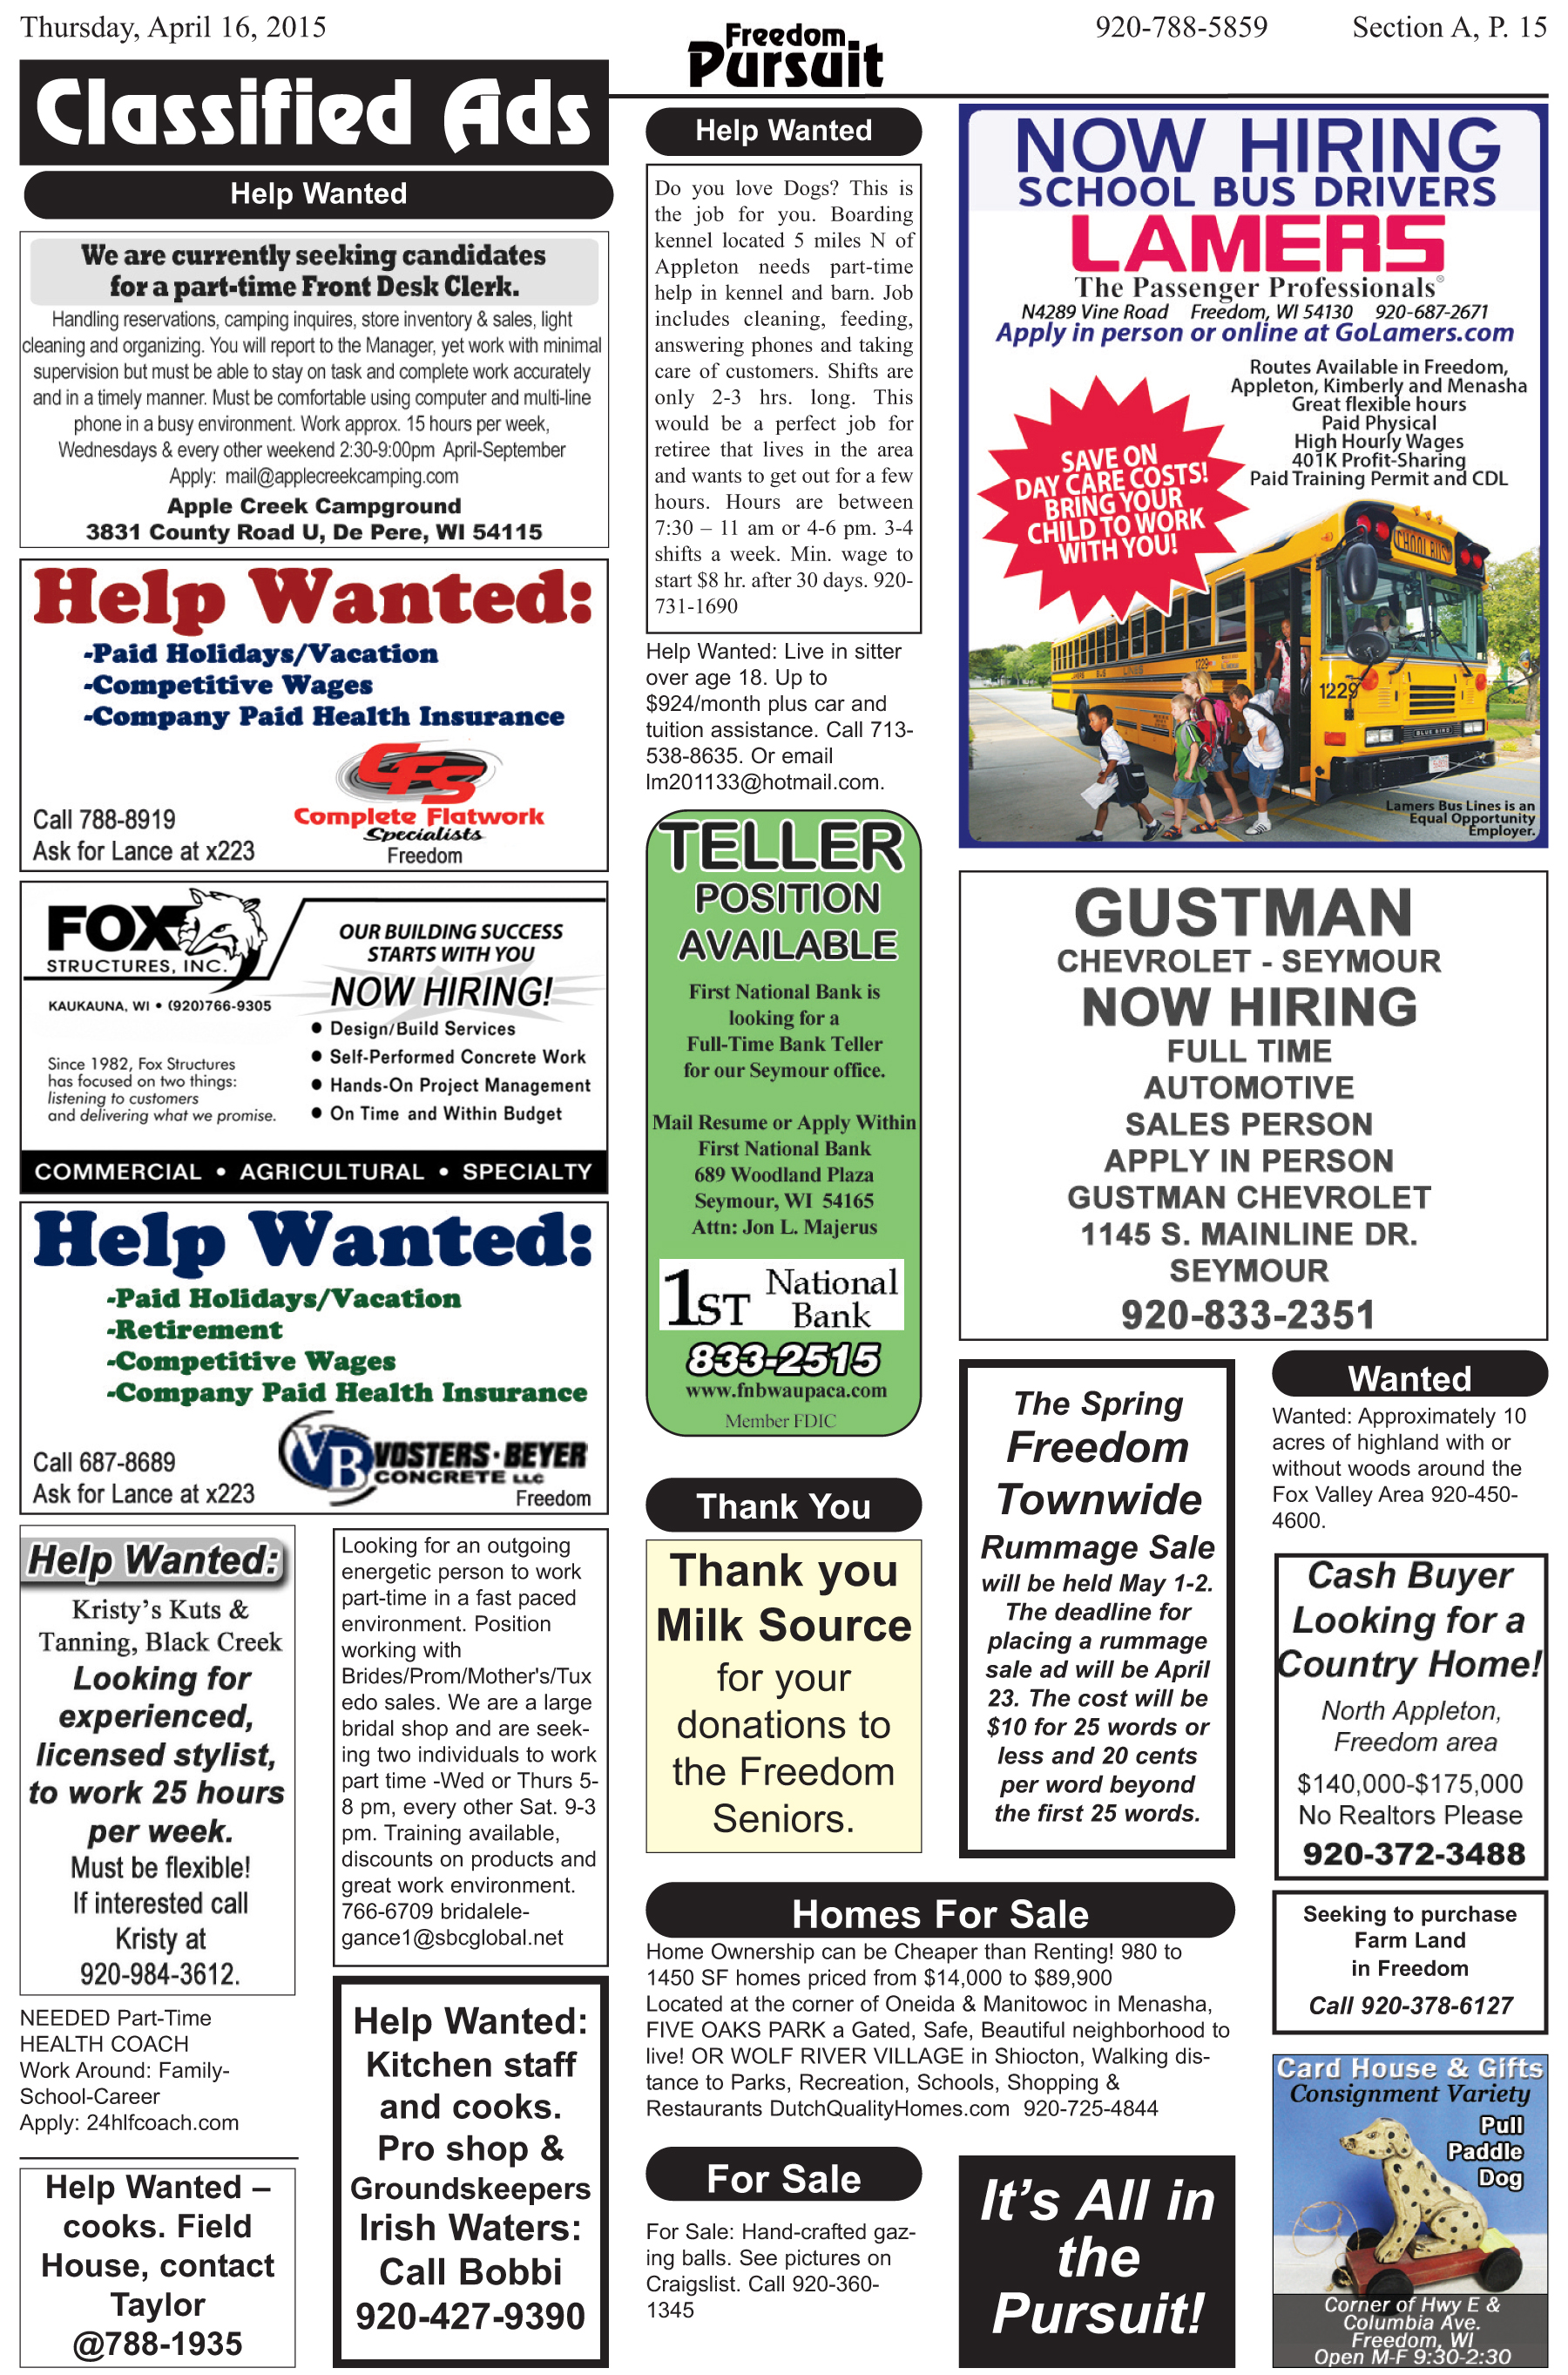 Classified Ads – Freedom Pursuit